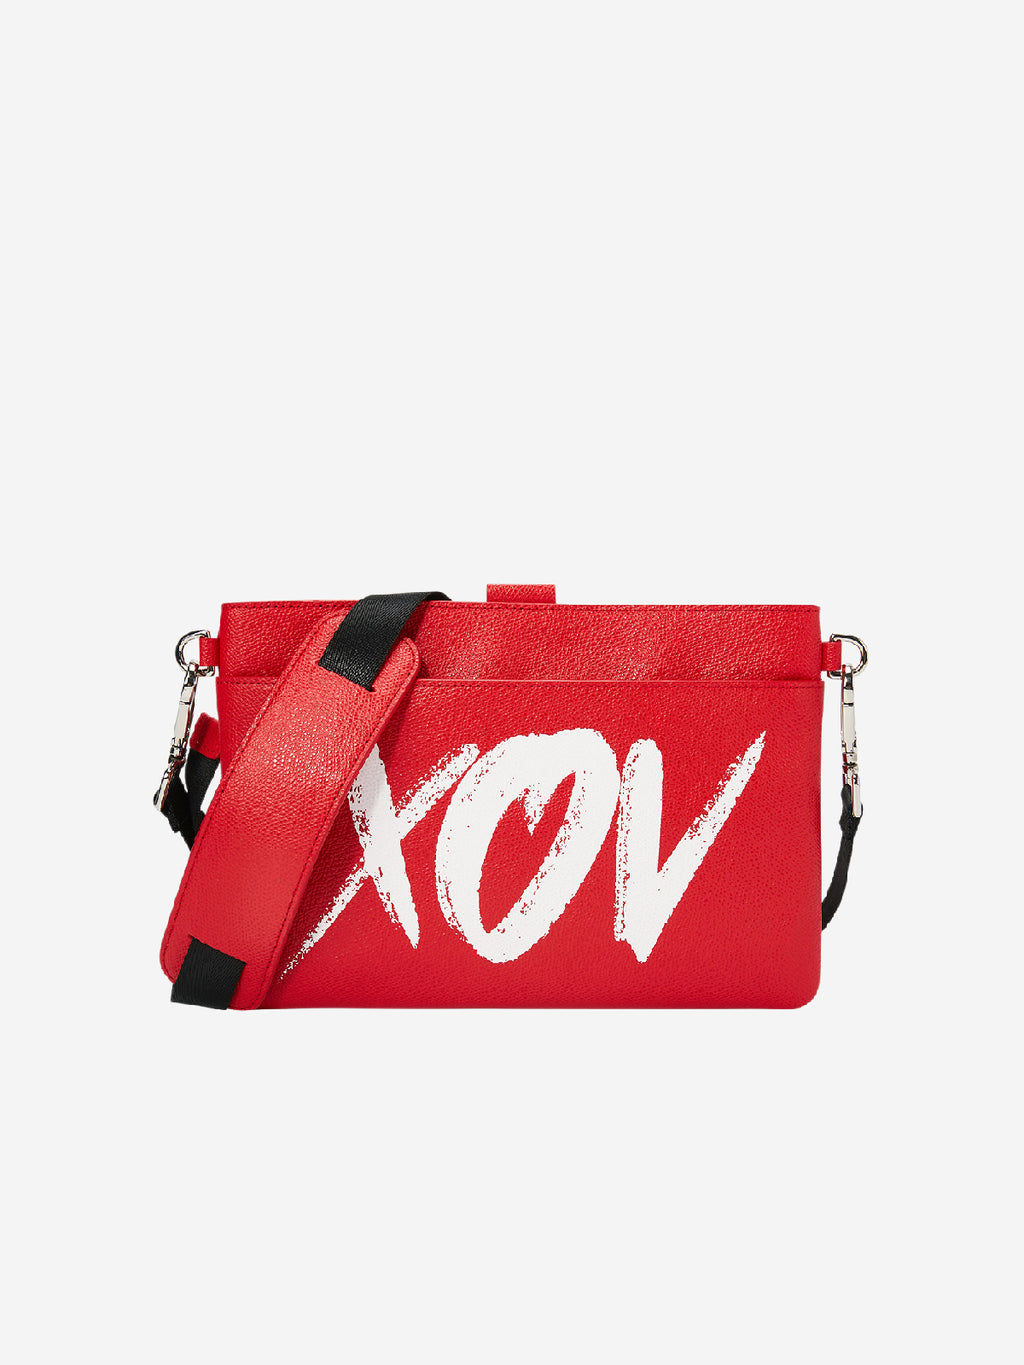 XOV Red Mini Strap Cross Body Bag